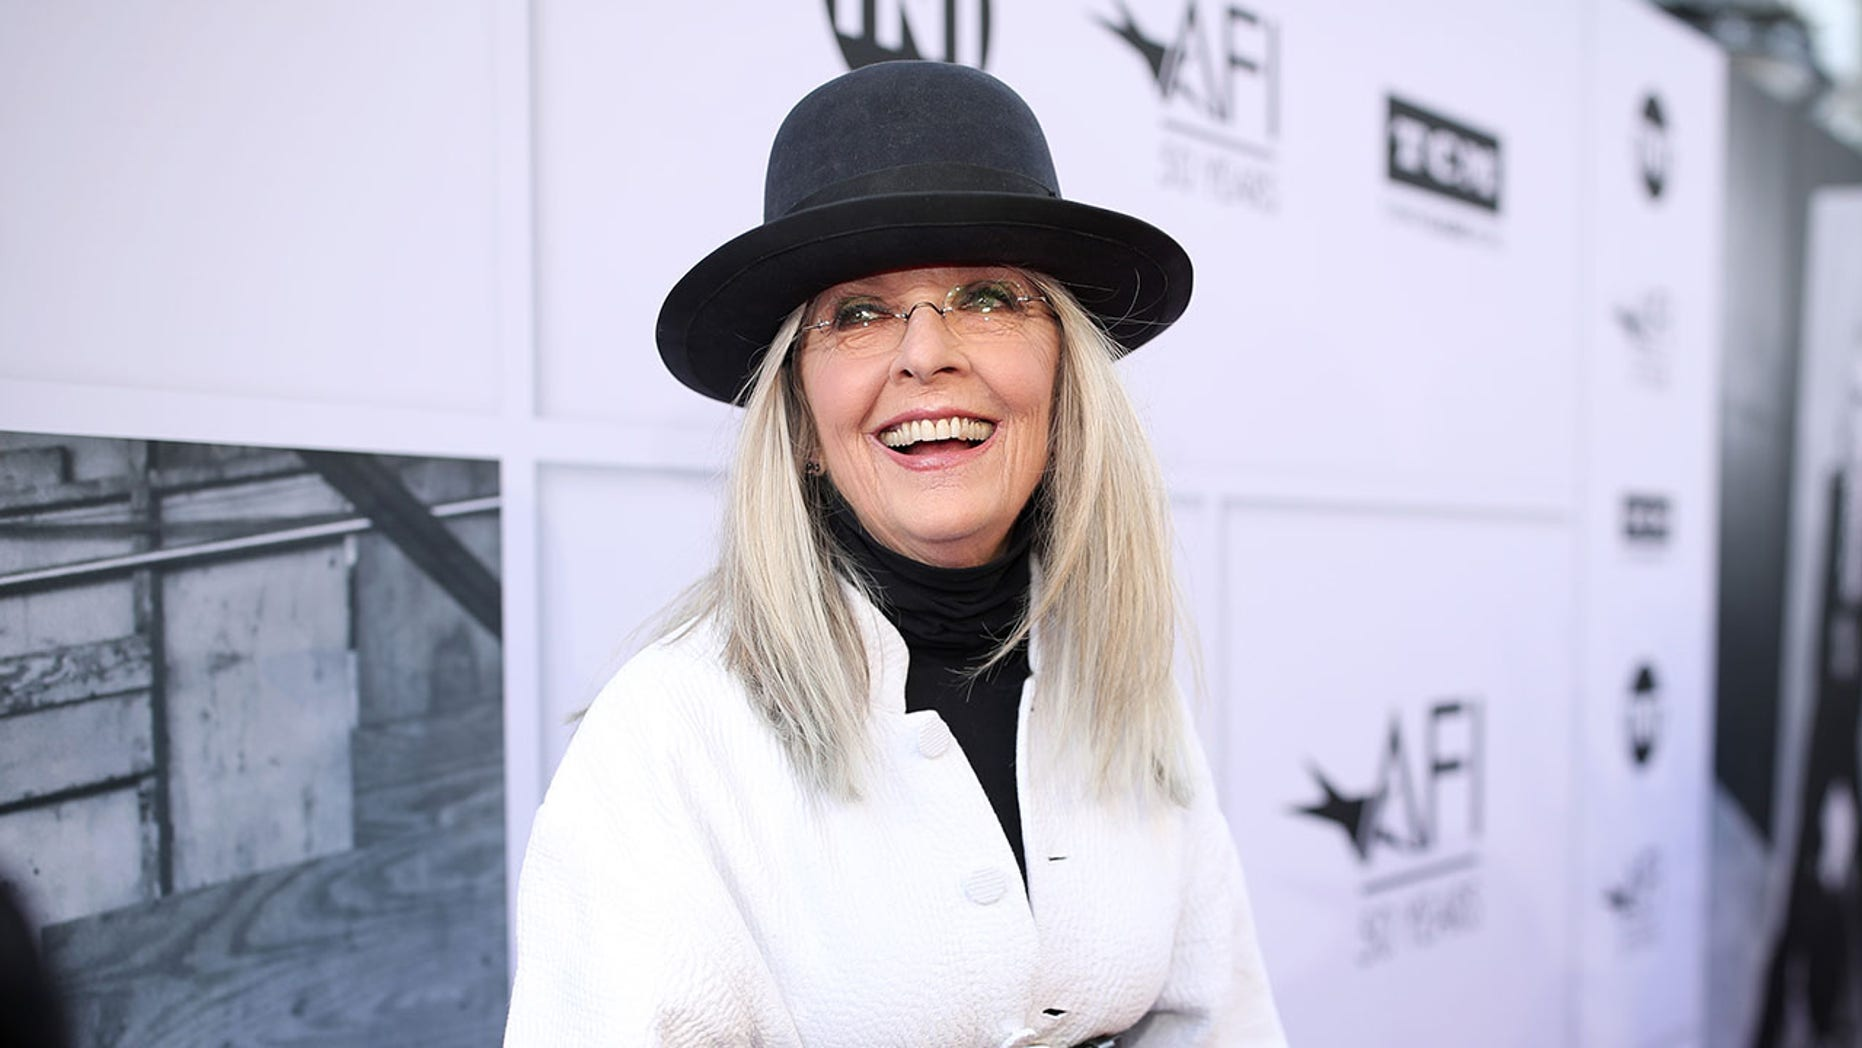 Honoree Diane Keaton arrives at American Film Institute's 45th Life Achievement Award Gala Tribute to Diane Keaton at Dolby Theatre on June 8, 2017 in Hollywood, California. 26658_002 (Photo by Christopher Polk/Getty Images for Turner)